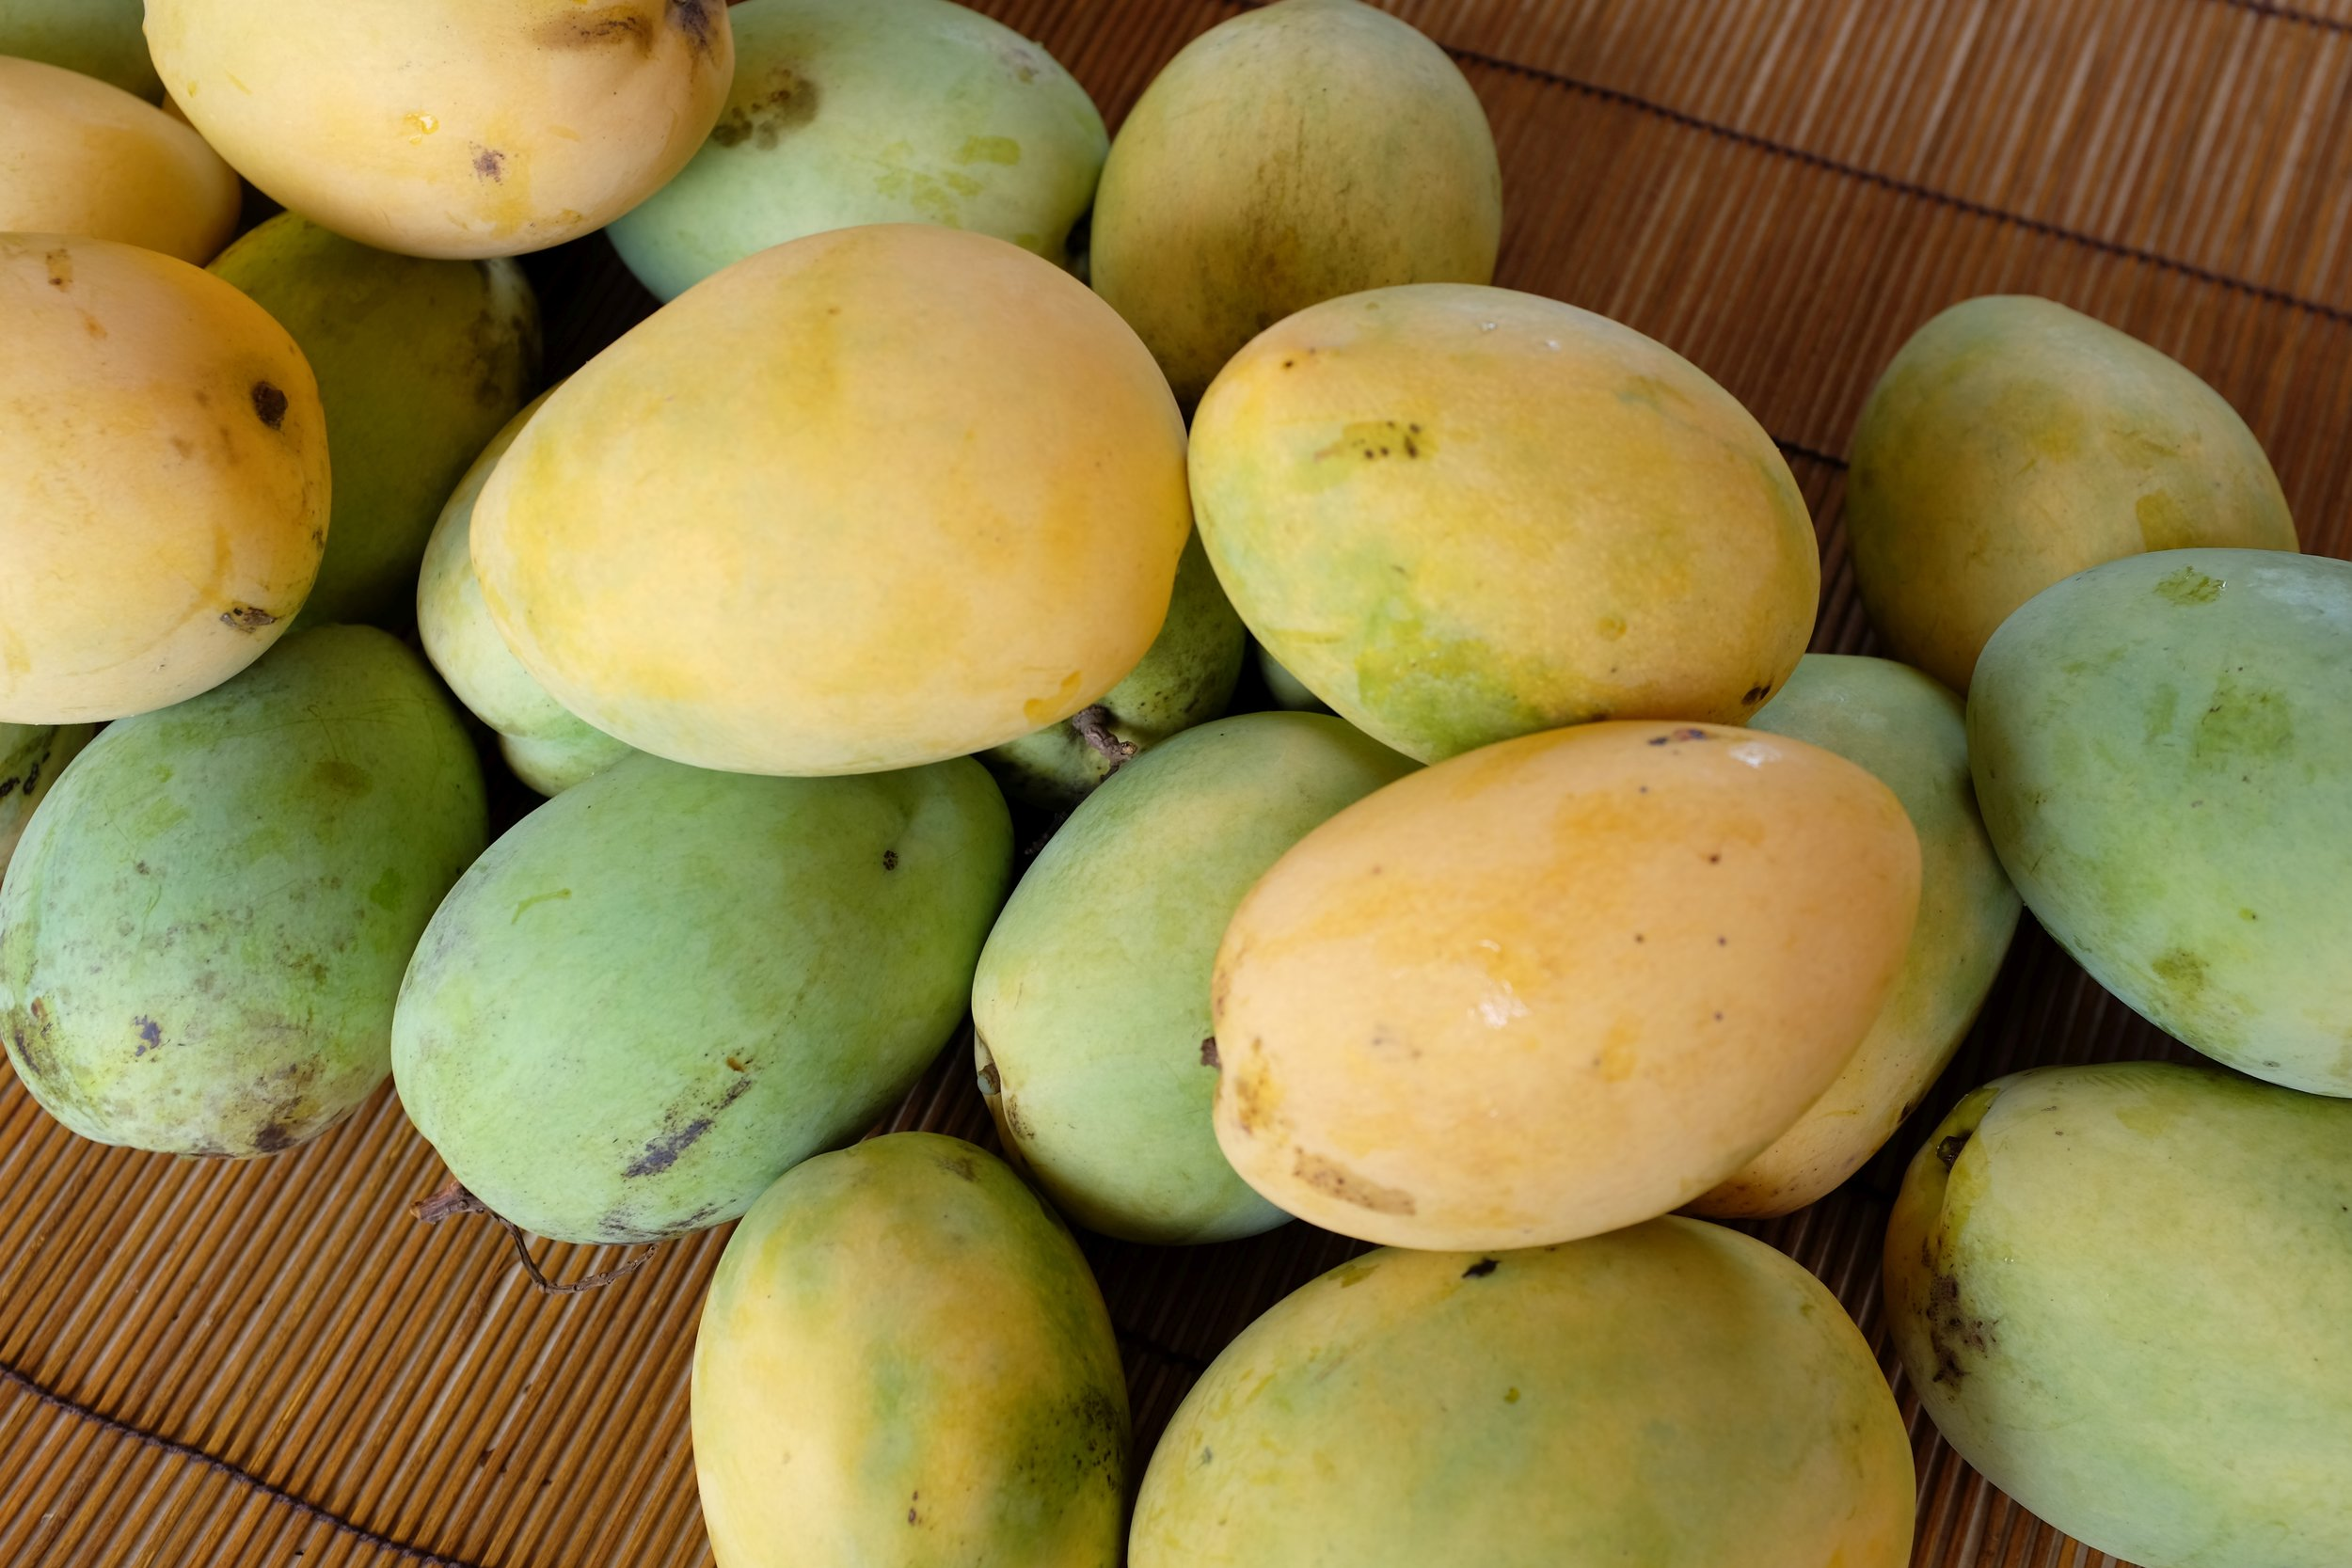 We have a great selection of 'Duncan' Mangos!